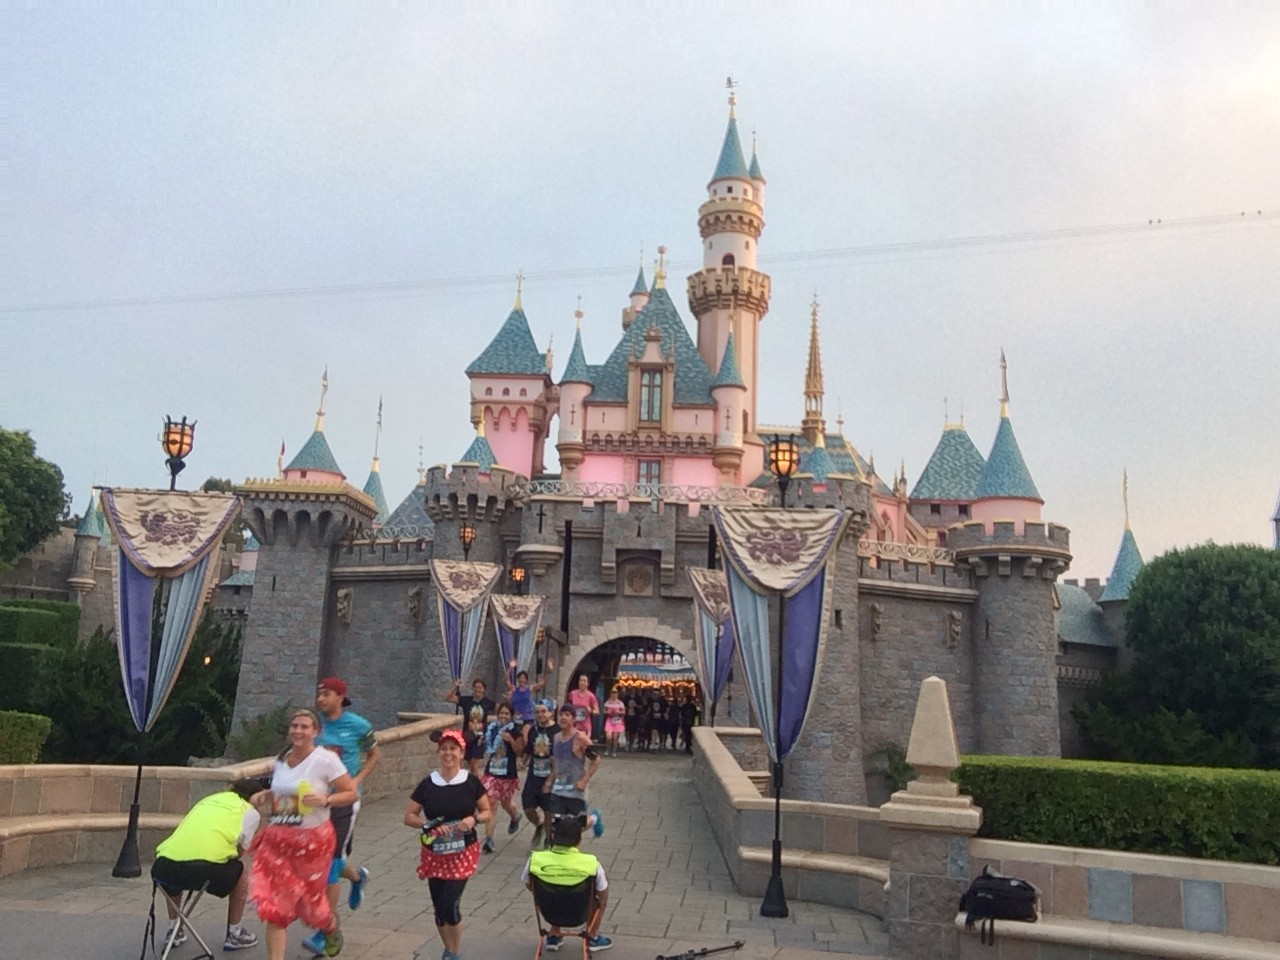 Race Review: 2014 runDisney Dumbo Double Dare & Coast to Coast Challenge (Part Two)